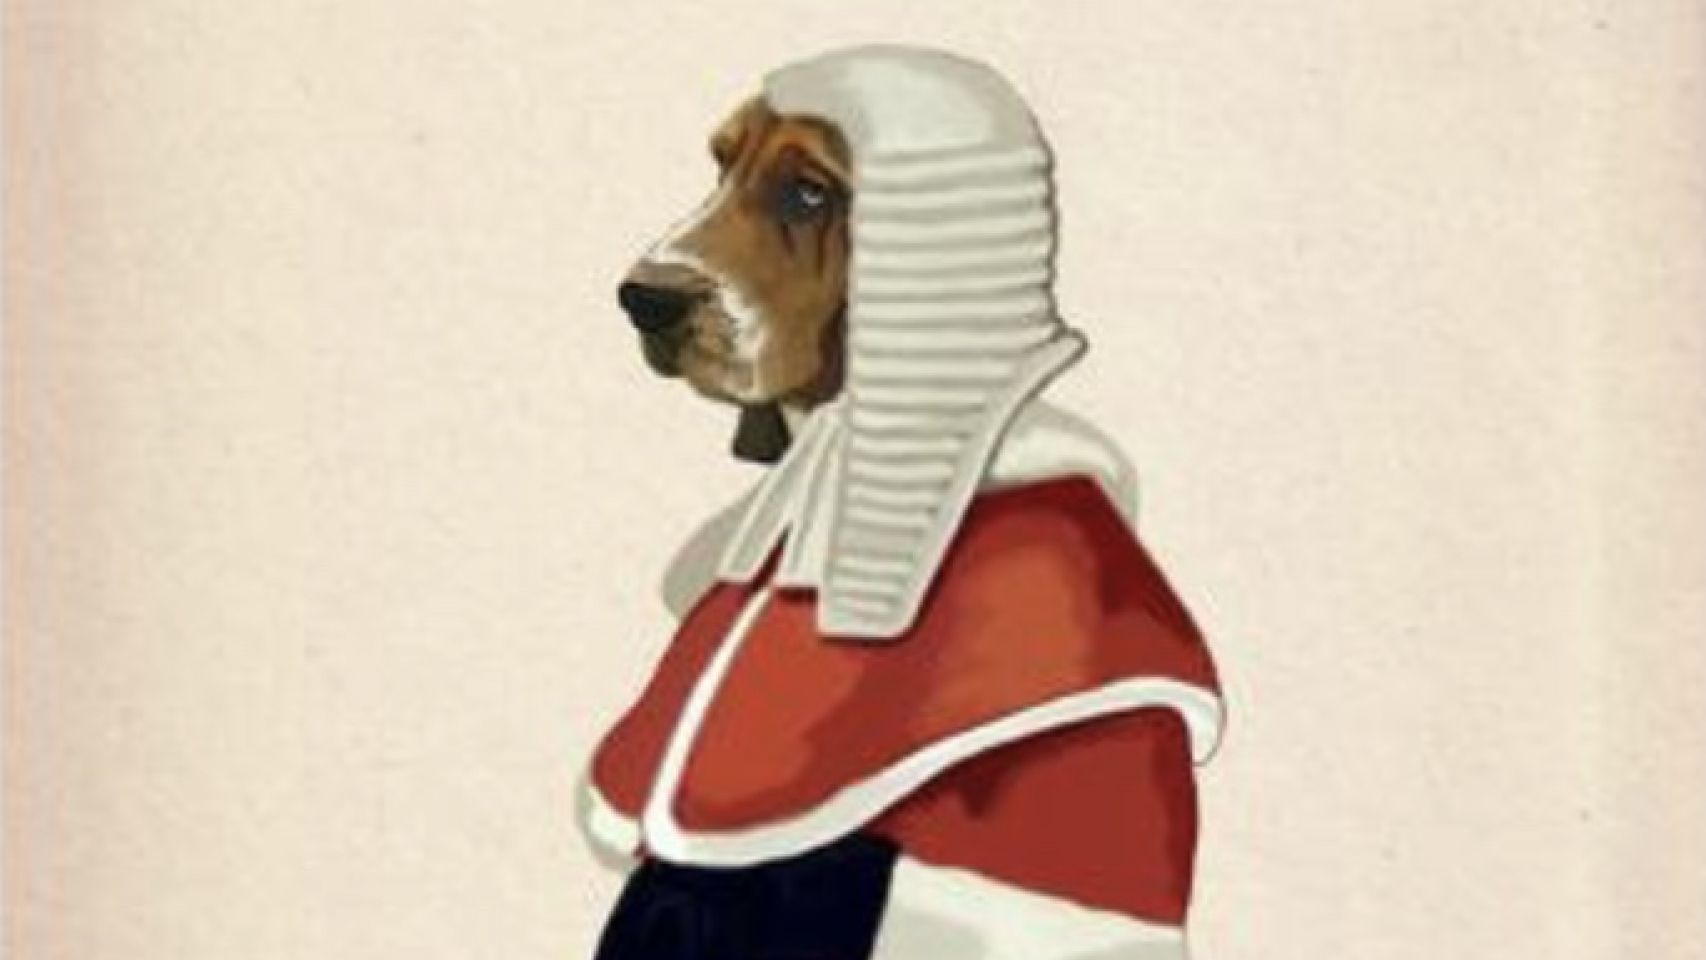 A dog in court